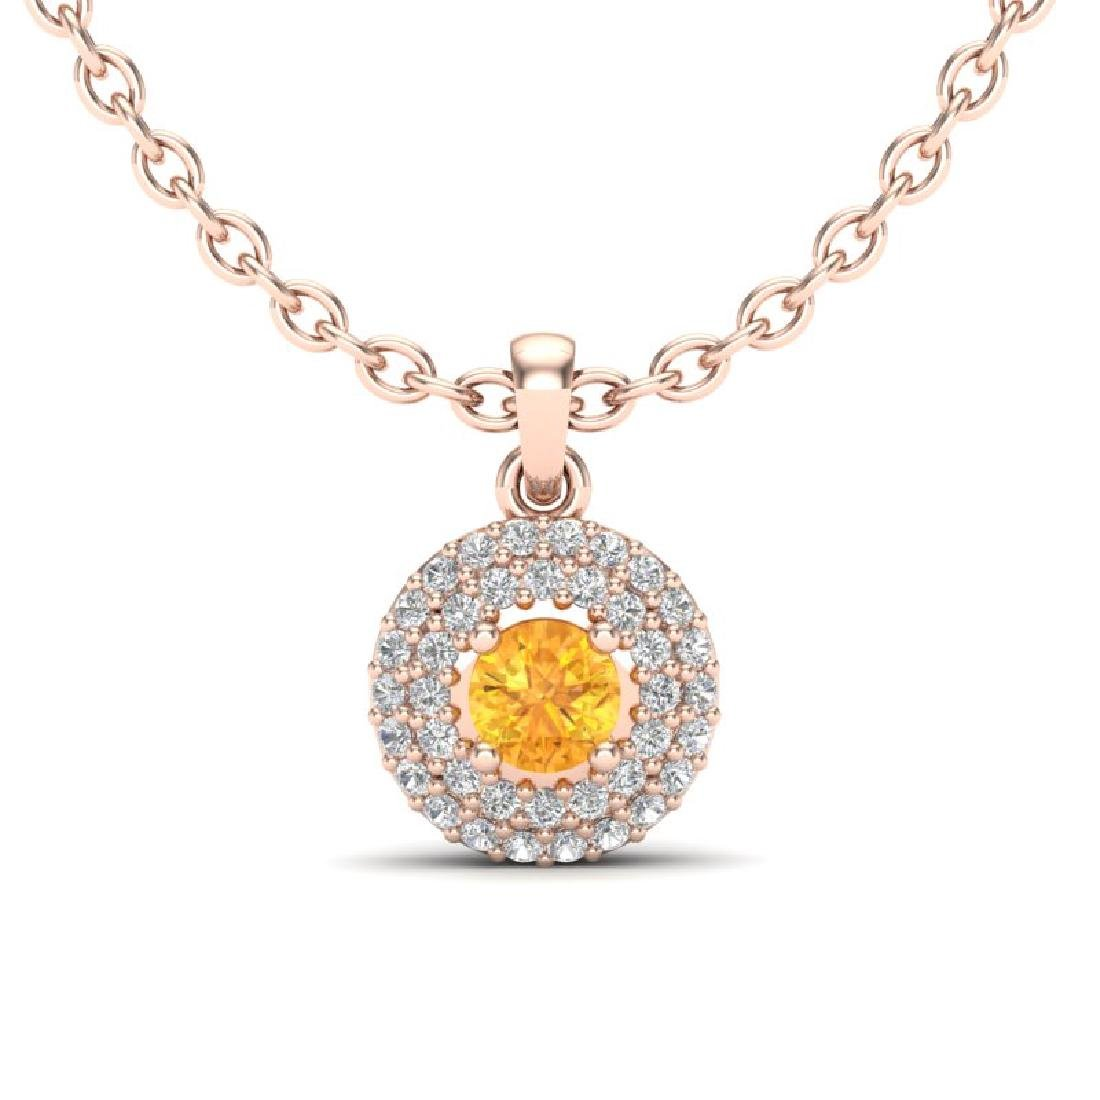 0.60 CTW Citrine & Micro VS/SI Diamond Necklace 14K